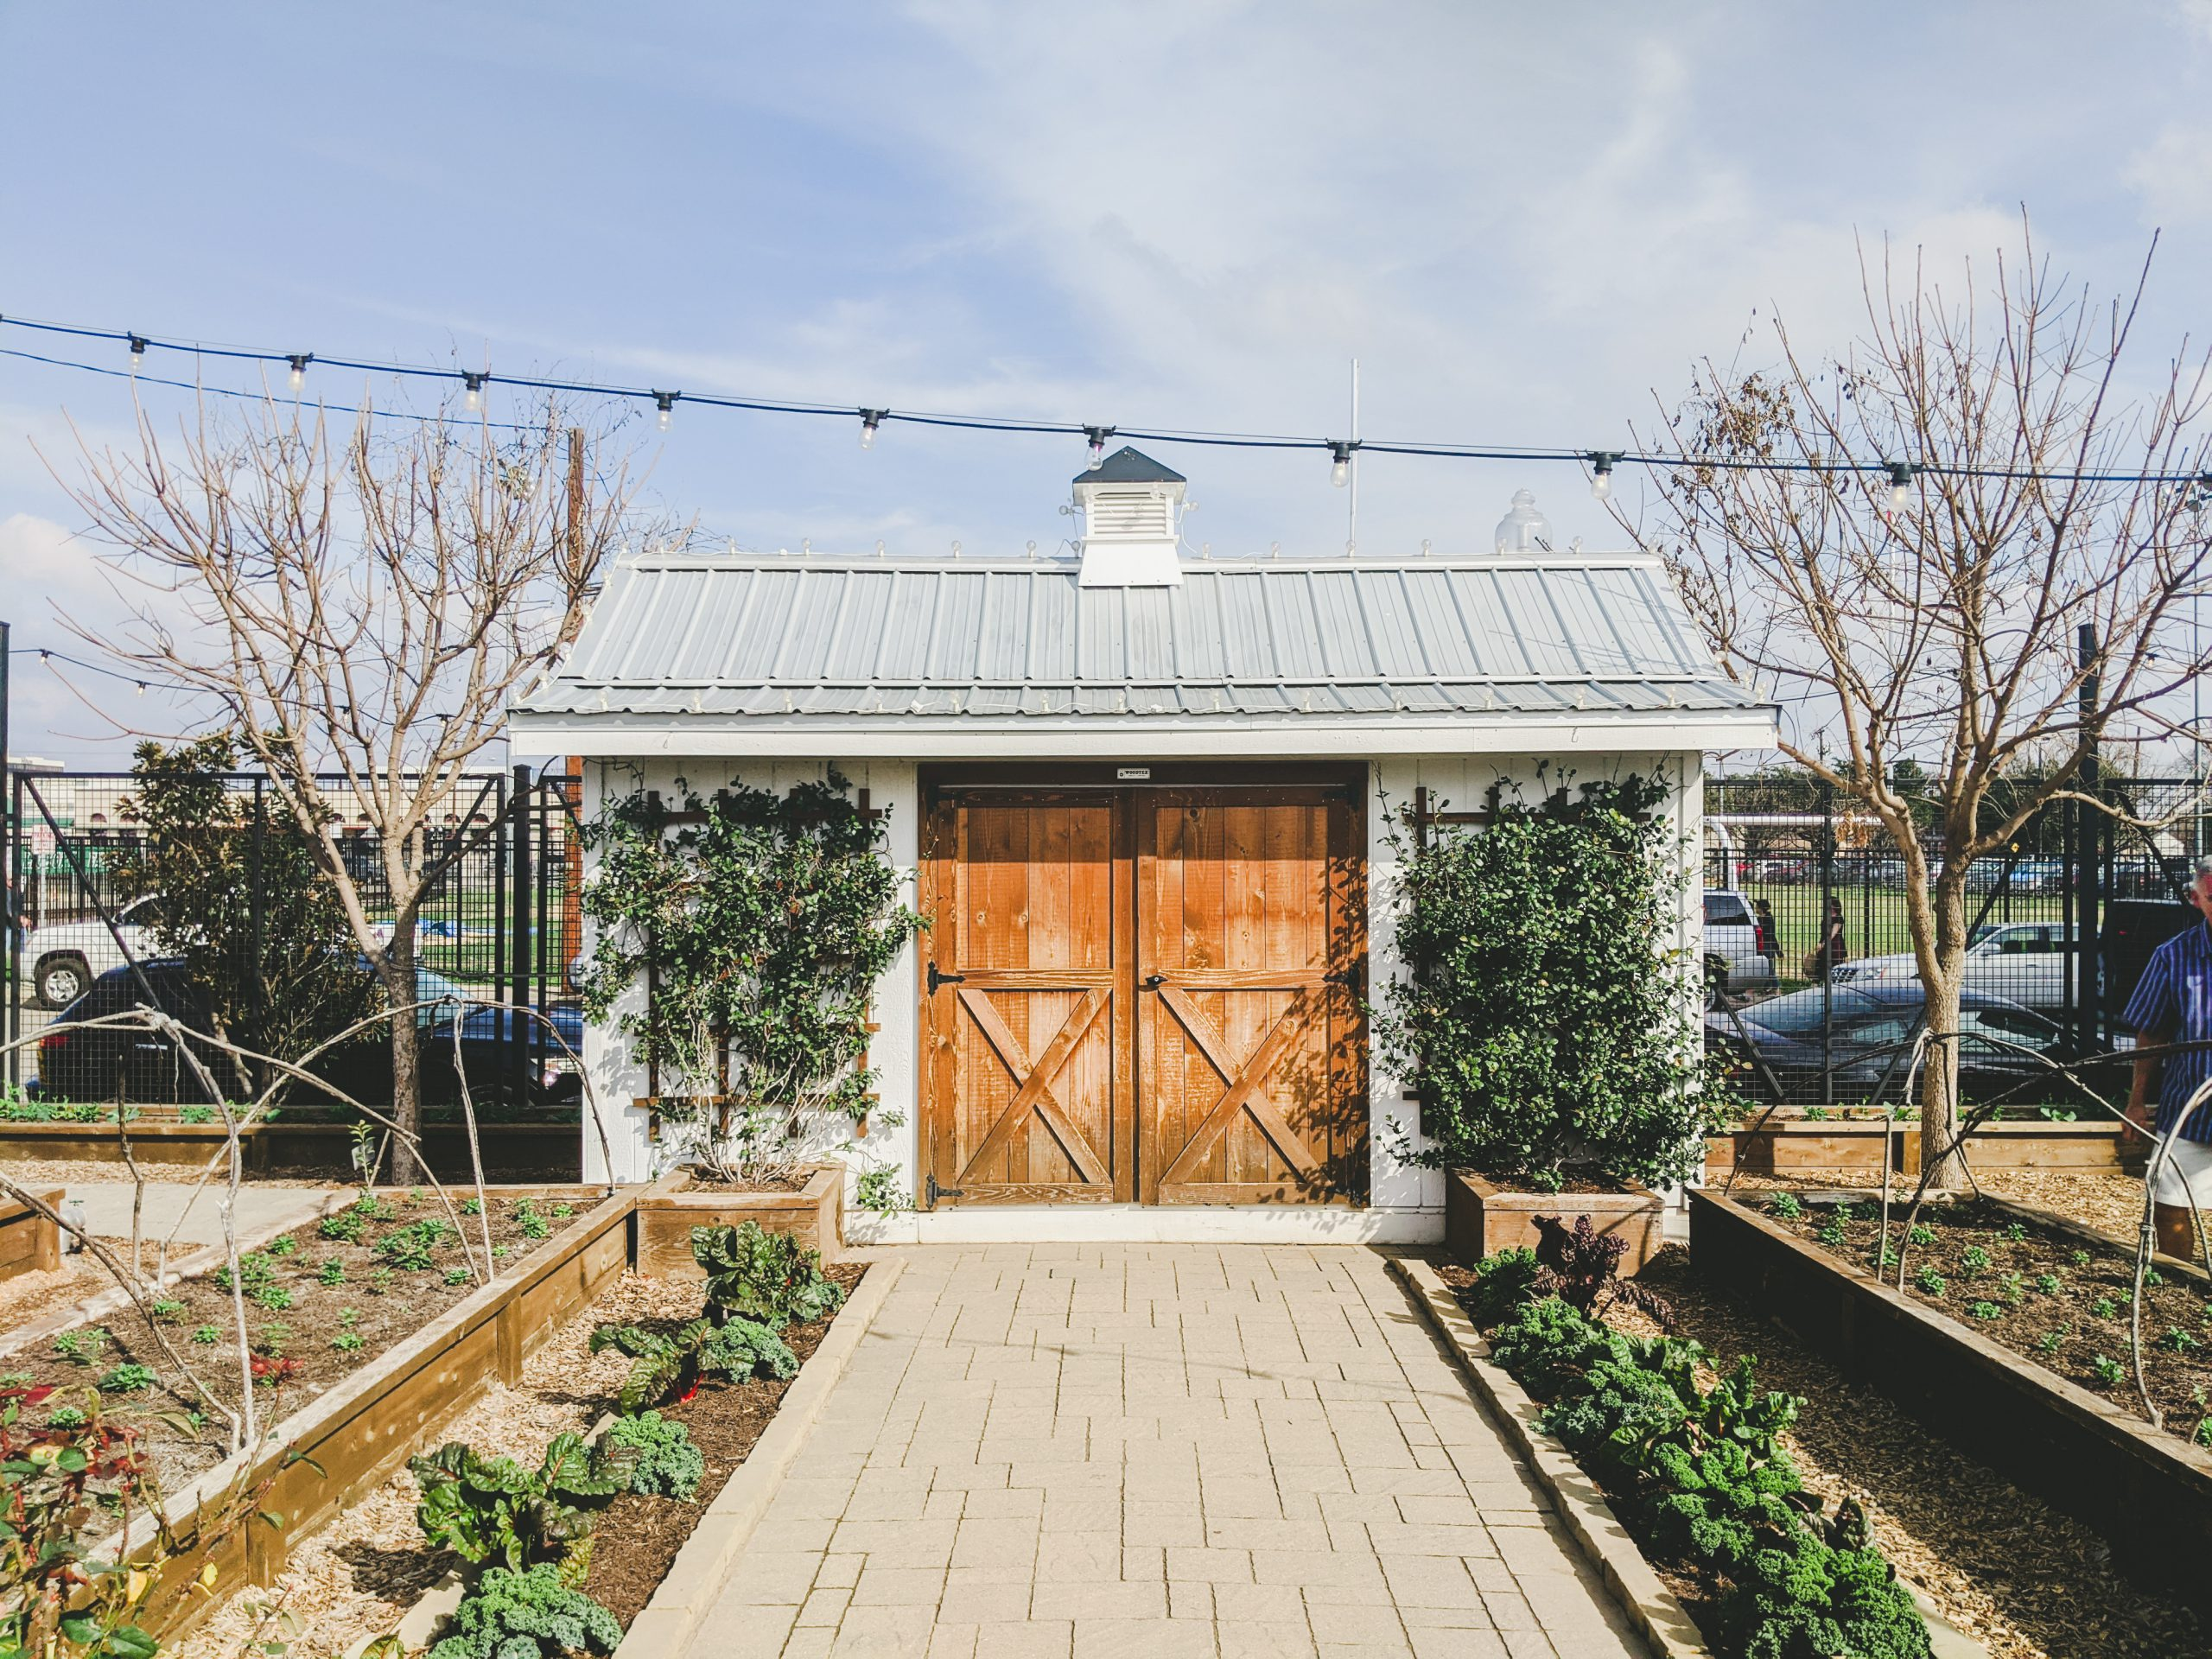 magnolia silos shed and garden